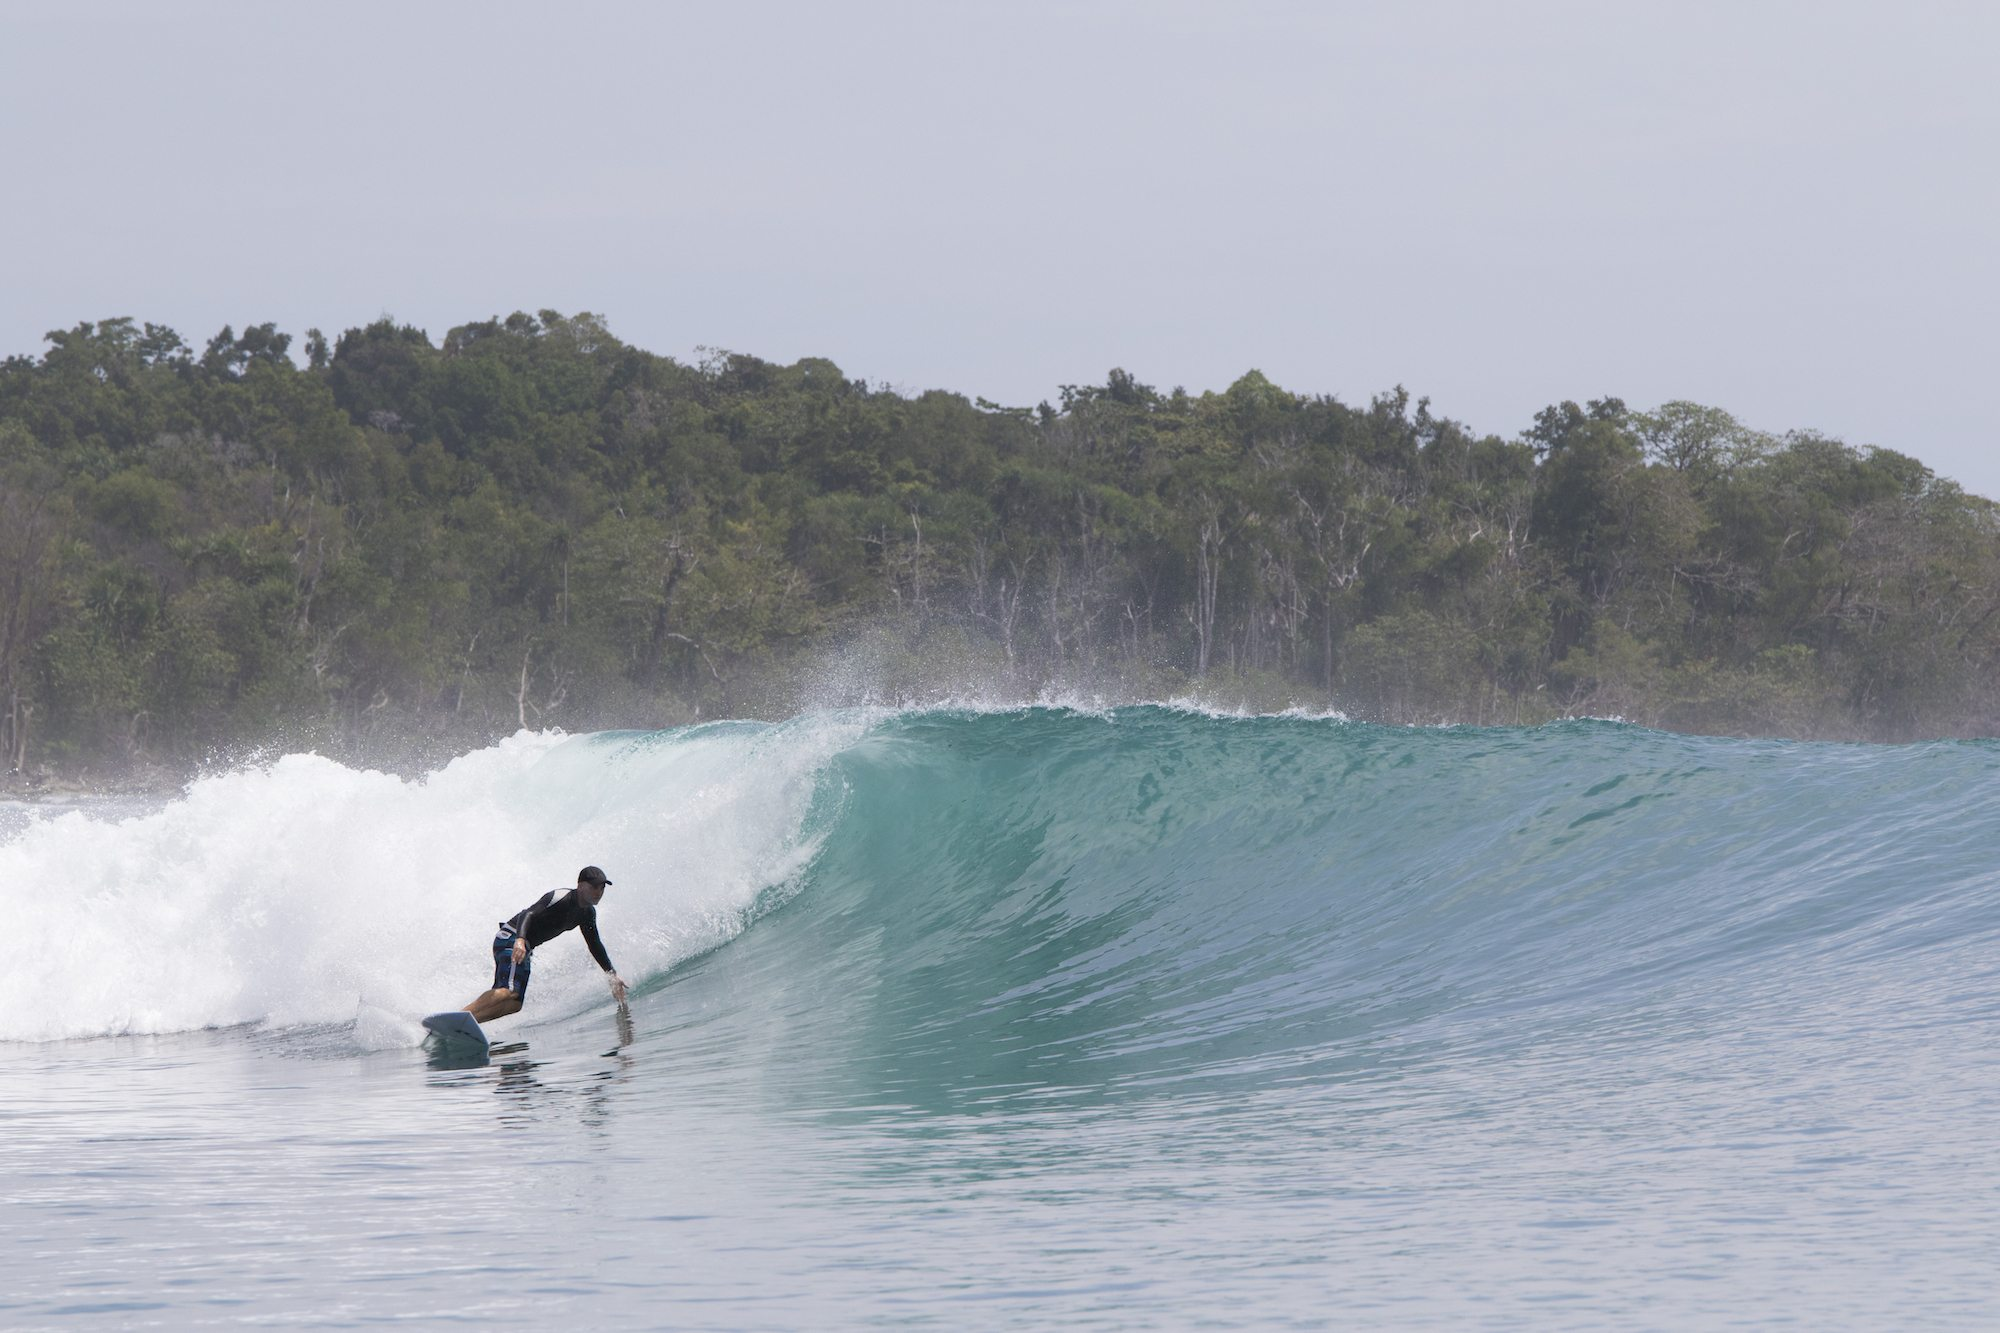 surfer catches the waves, surf banyak